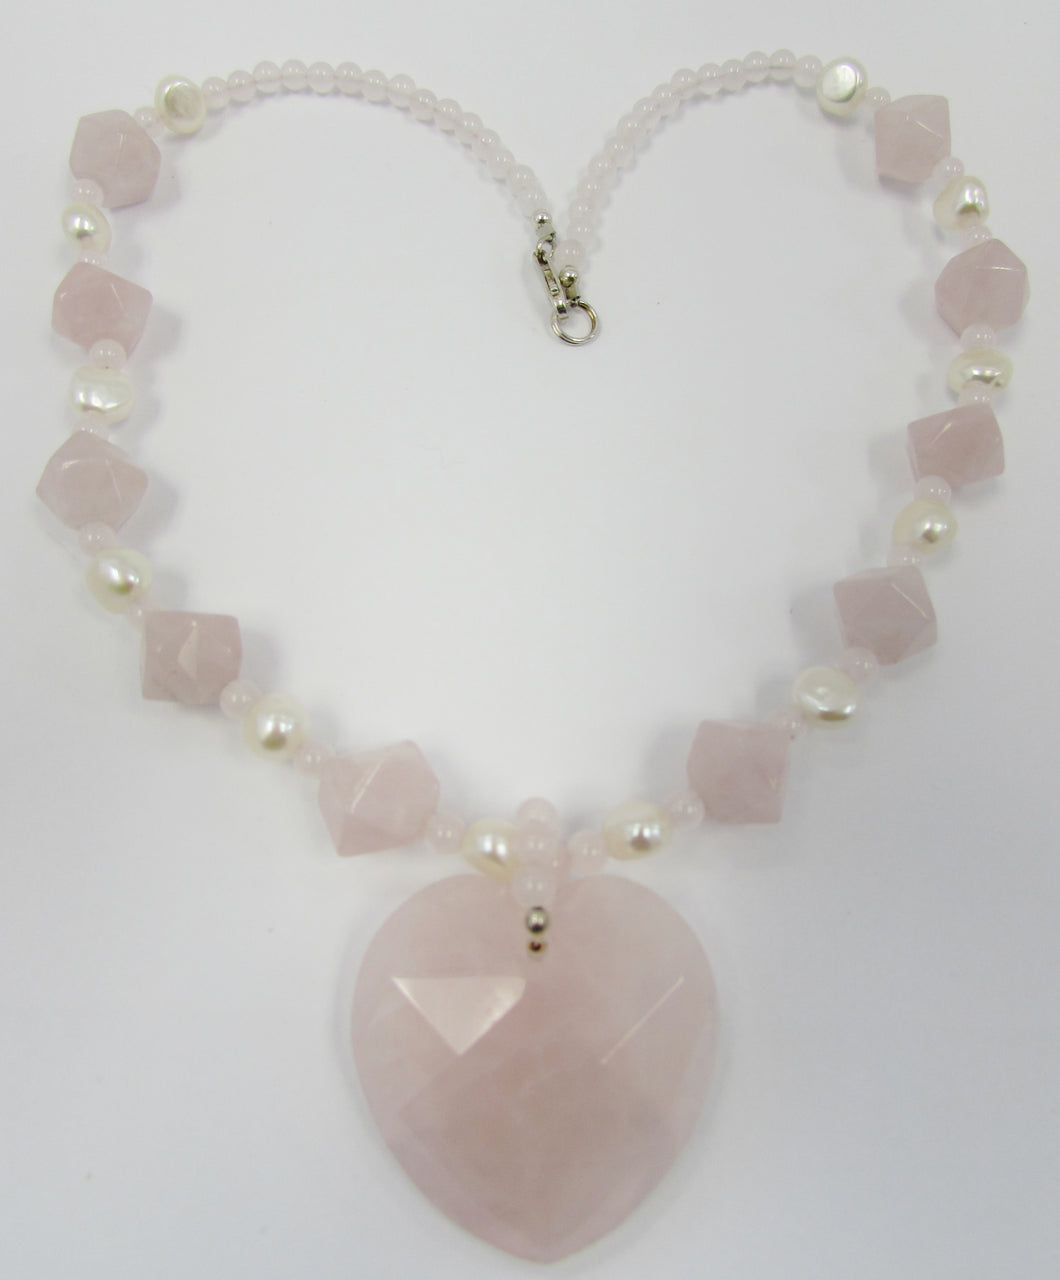 Lee Sands Faceted Rose Quartz Heart w Pearls Necklace